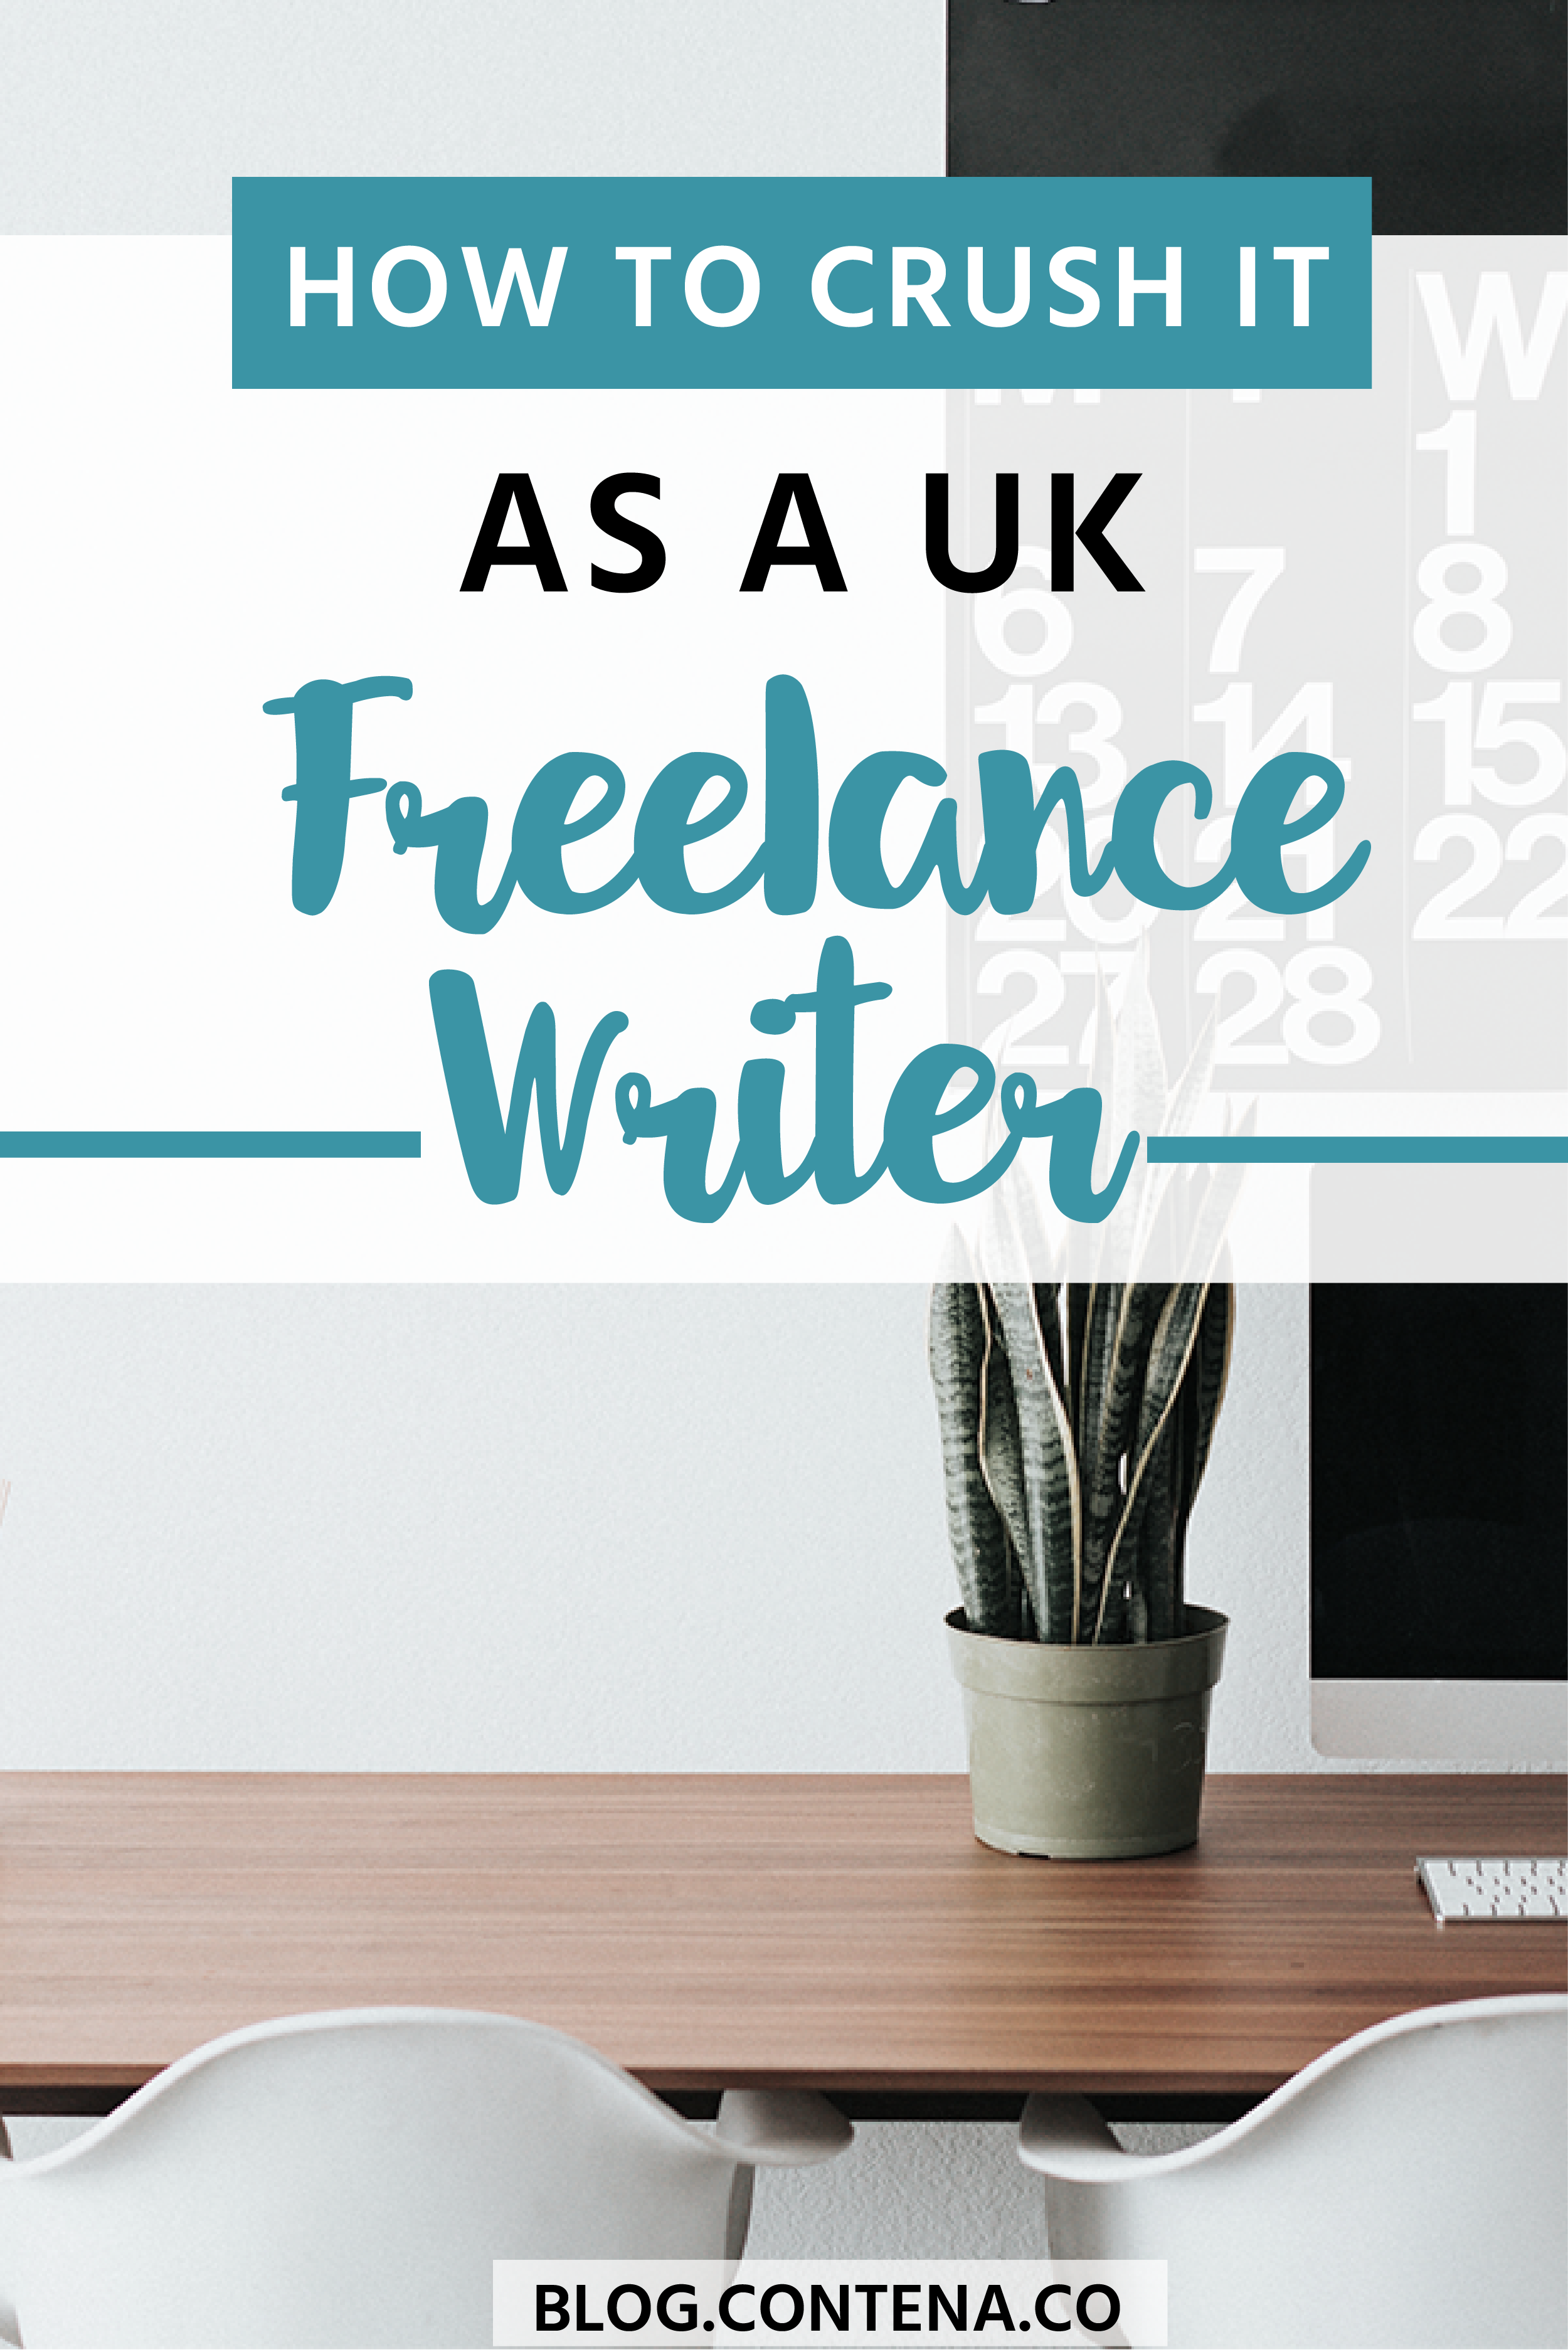 Being a freelance writer in the UK is an awesome career choice. If you're wondering how to become a freelance writer and where to find writing jobs, this article will help you understand how to grow your business as a UK freelancer! #UK #UnitedKingdom #FreelanceWriting #Freelancer #WorkFromHome #SideHustle #Money #OnlineBusiness #Writing #WritingJobs #Money